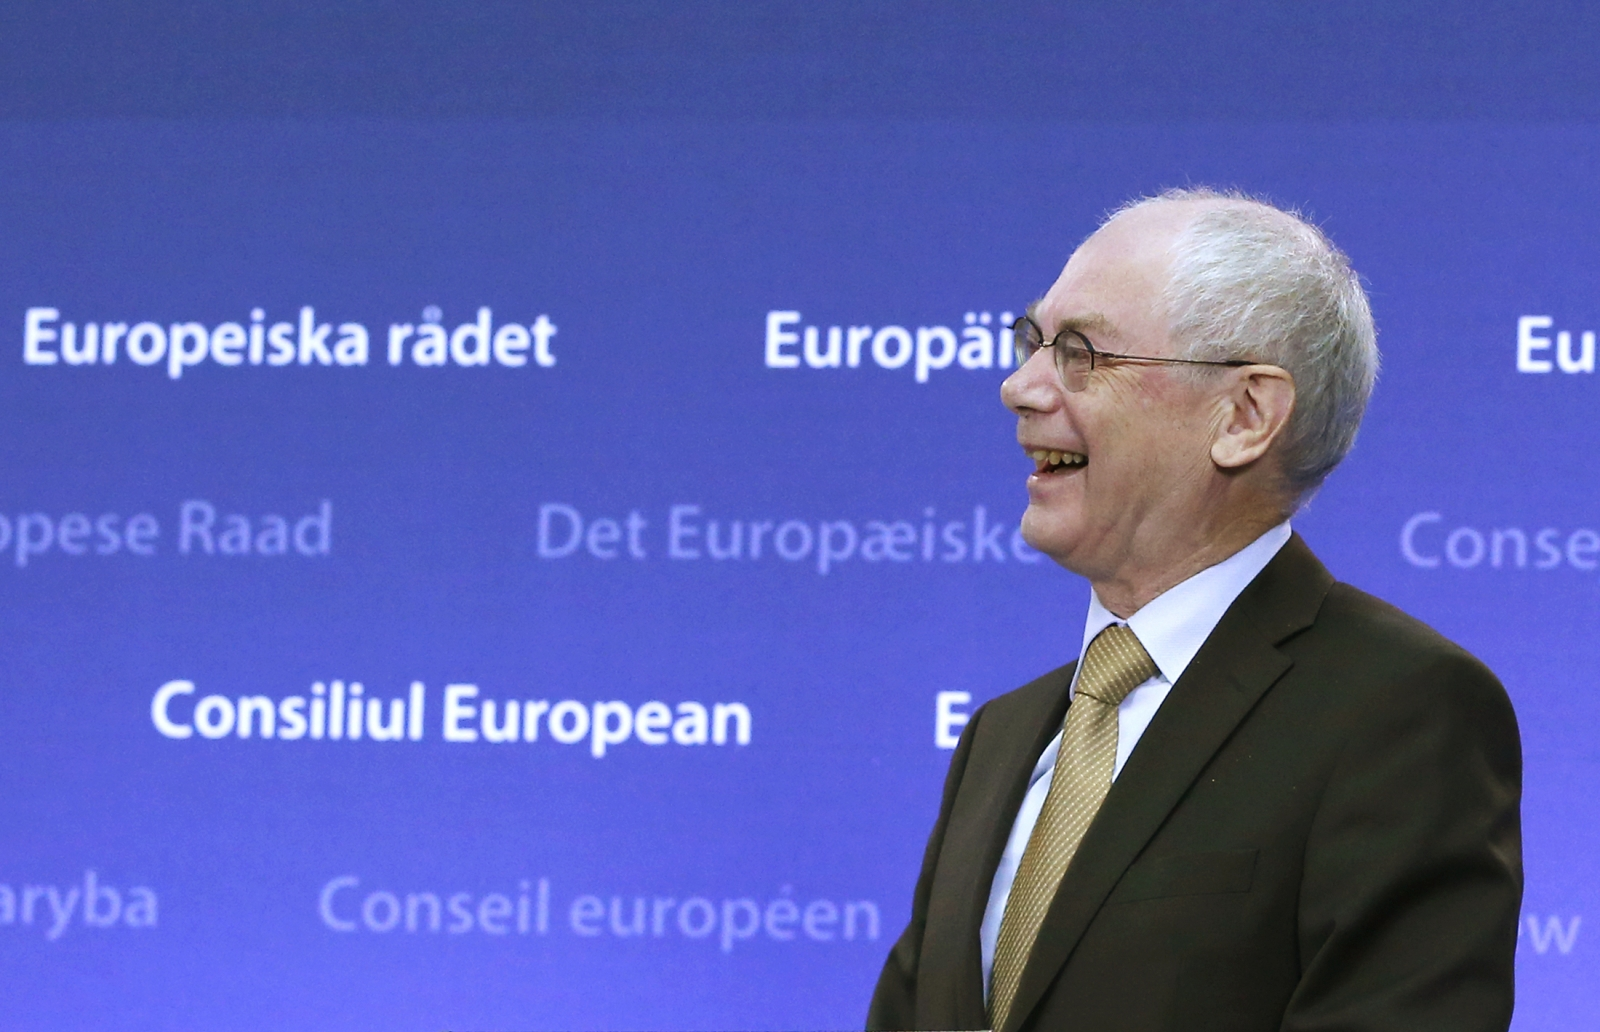 Outgoing European Council President Herman Van Rompuy smiles during a ceremony with former Polish Prime Minister, Donald Tusk (not in picture), during which Tusk took over from Van Rompuy replacing him as head of the European Council, in Brussels, Decembe